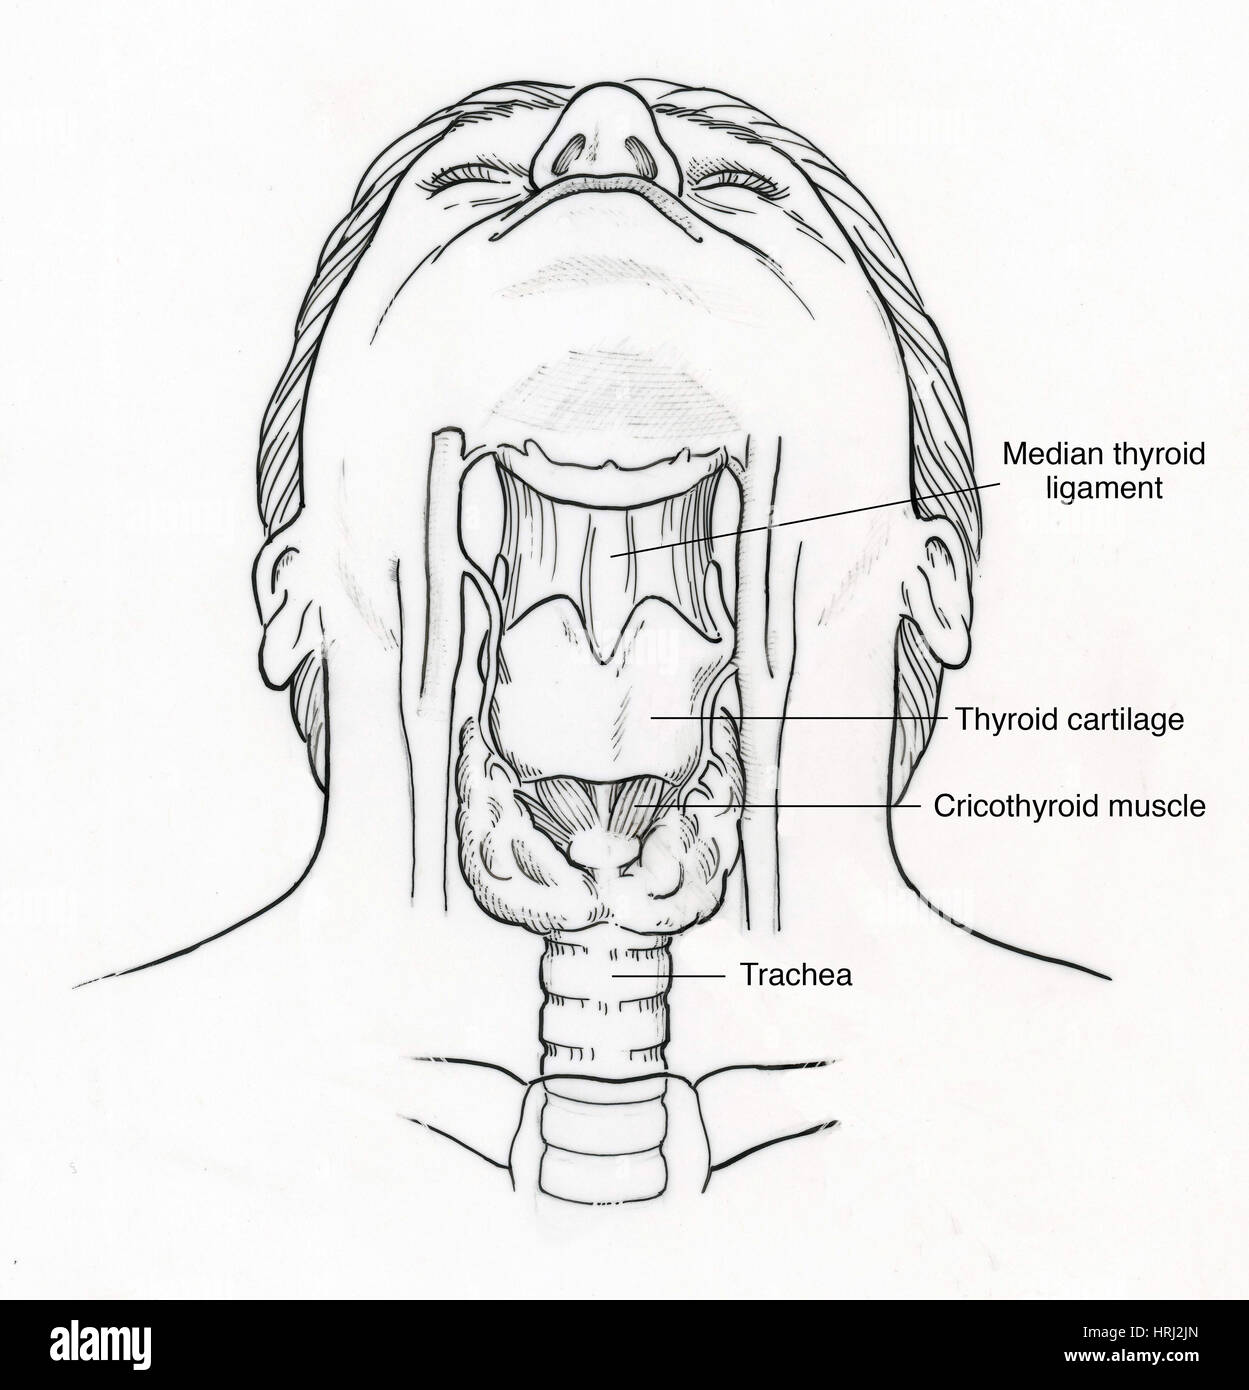 Illustration of Throat Anatomy Stock Photo: 135006893 - Alamy